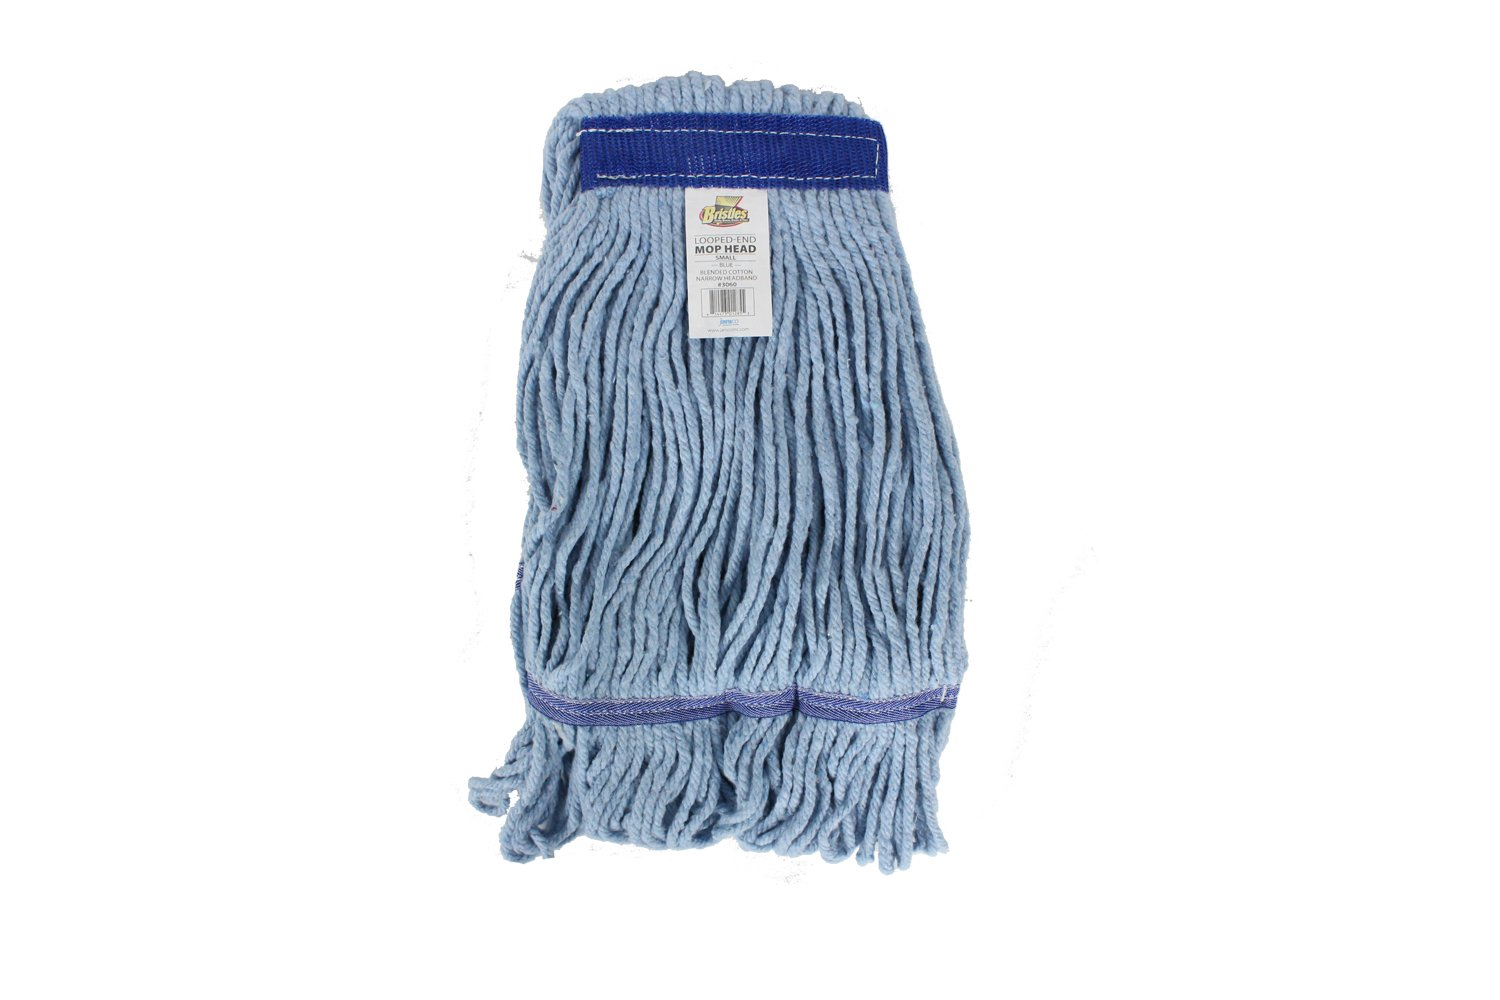 Bristles Wet Mop Head Loop End Replacement, 1 Inch Narrow Headband, 4 Ply Cotton Synthetic Yarn, Pack of 12 (Large, Blue)